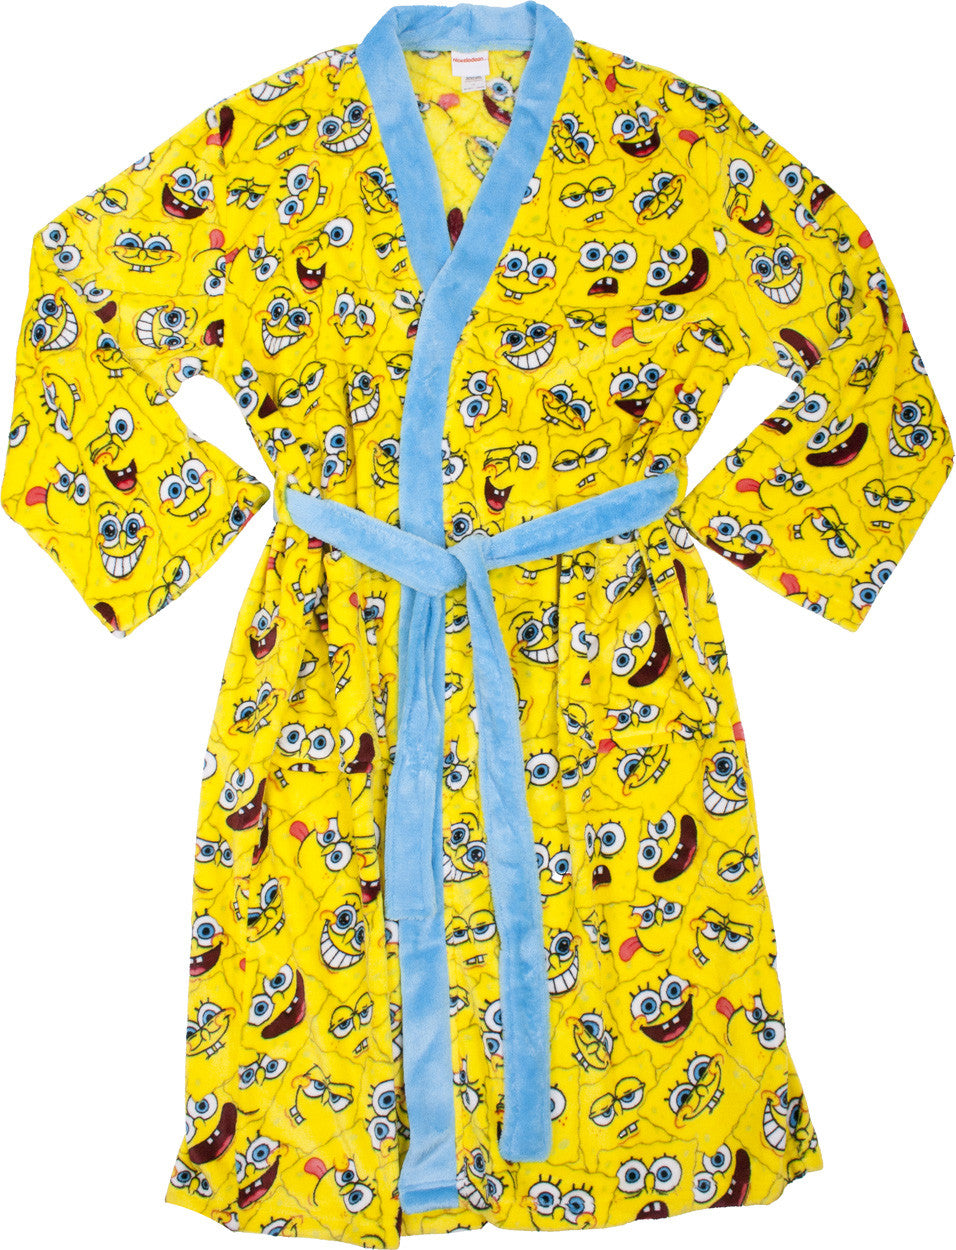 SpongeBob SquarePants Faces Robe - Adult